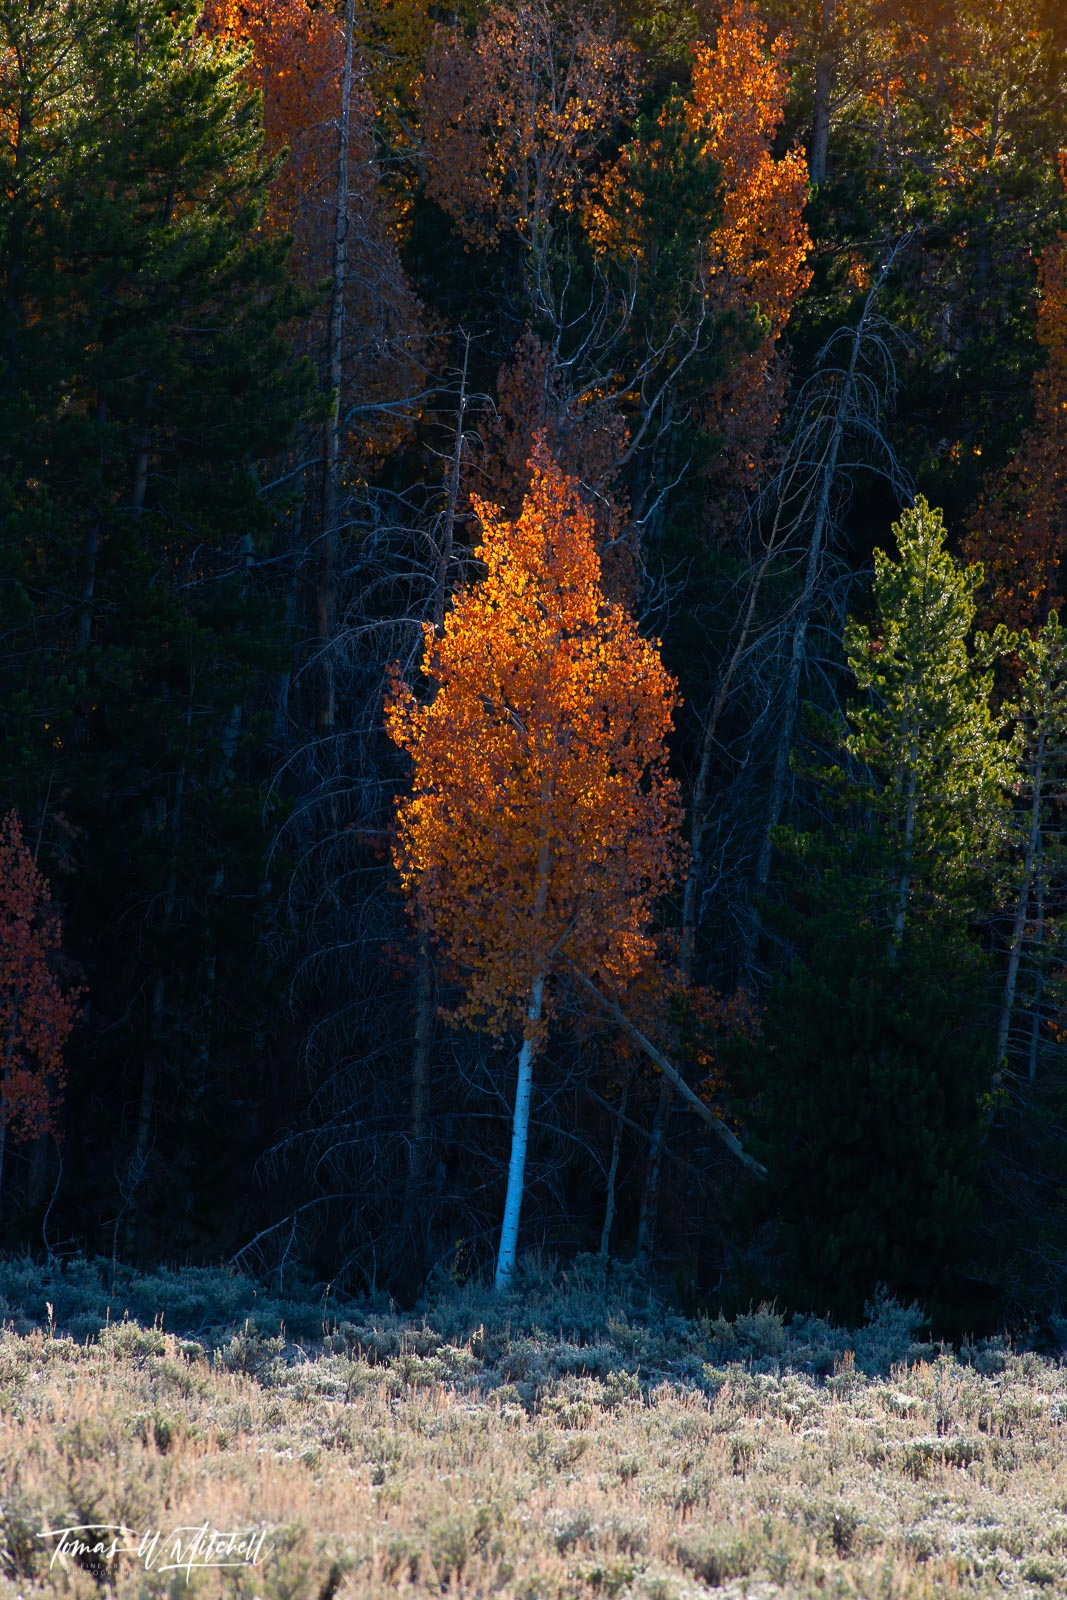 limited edition, museum grade, fine art, prints, quaking aspens, tree, forest, utah, light, yellow, orange, red, photograph, contrast, aspen, fall, autumn, photo